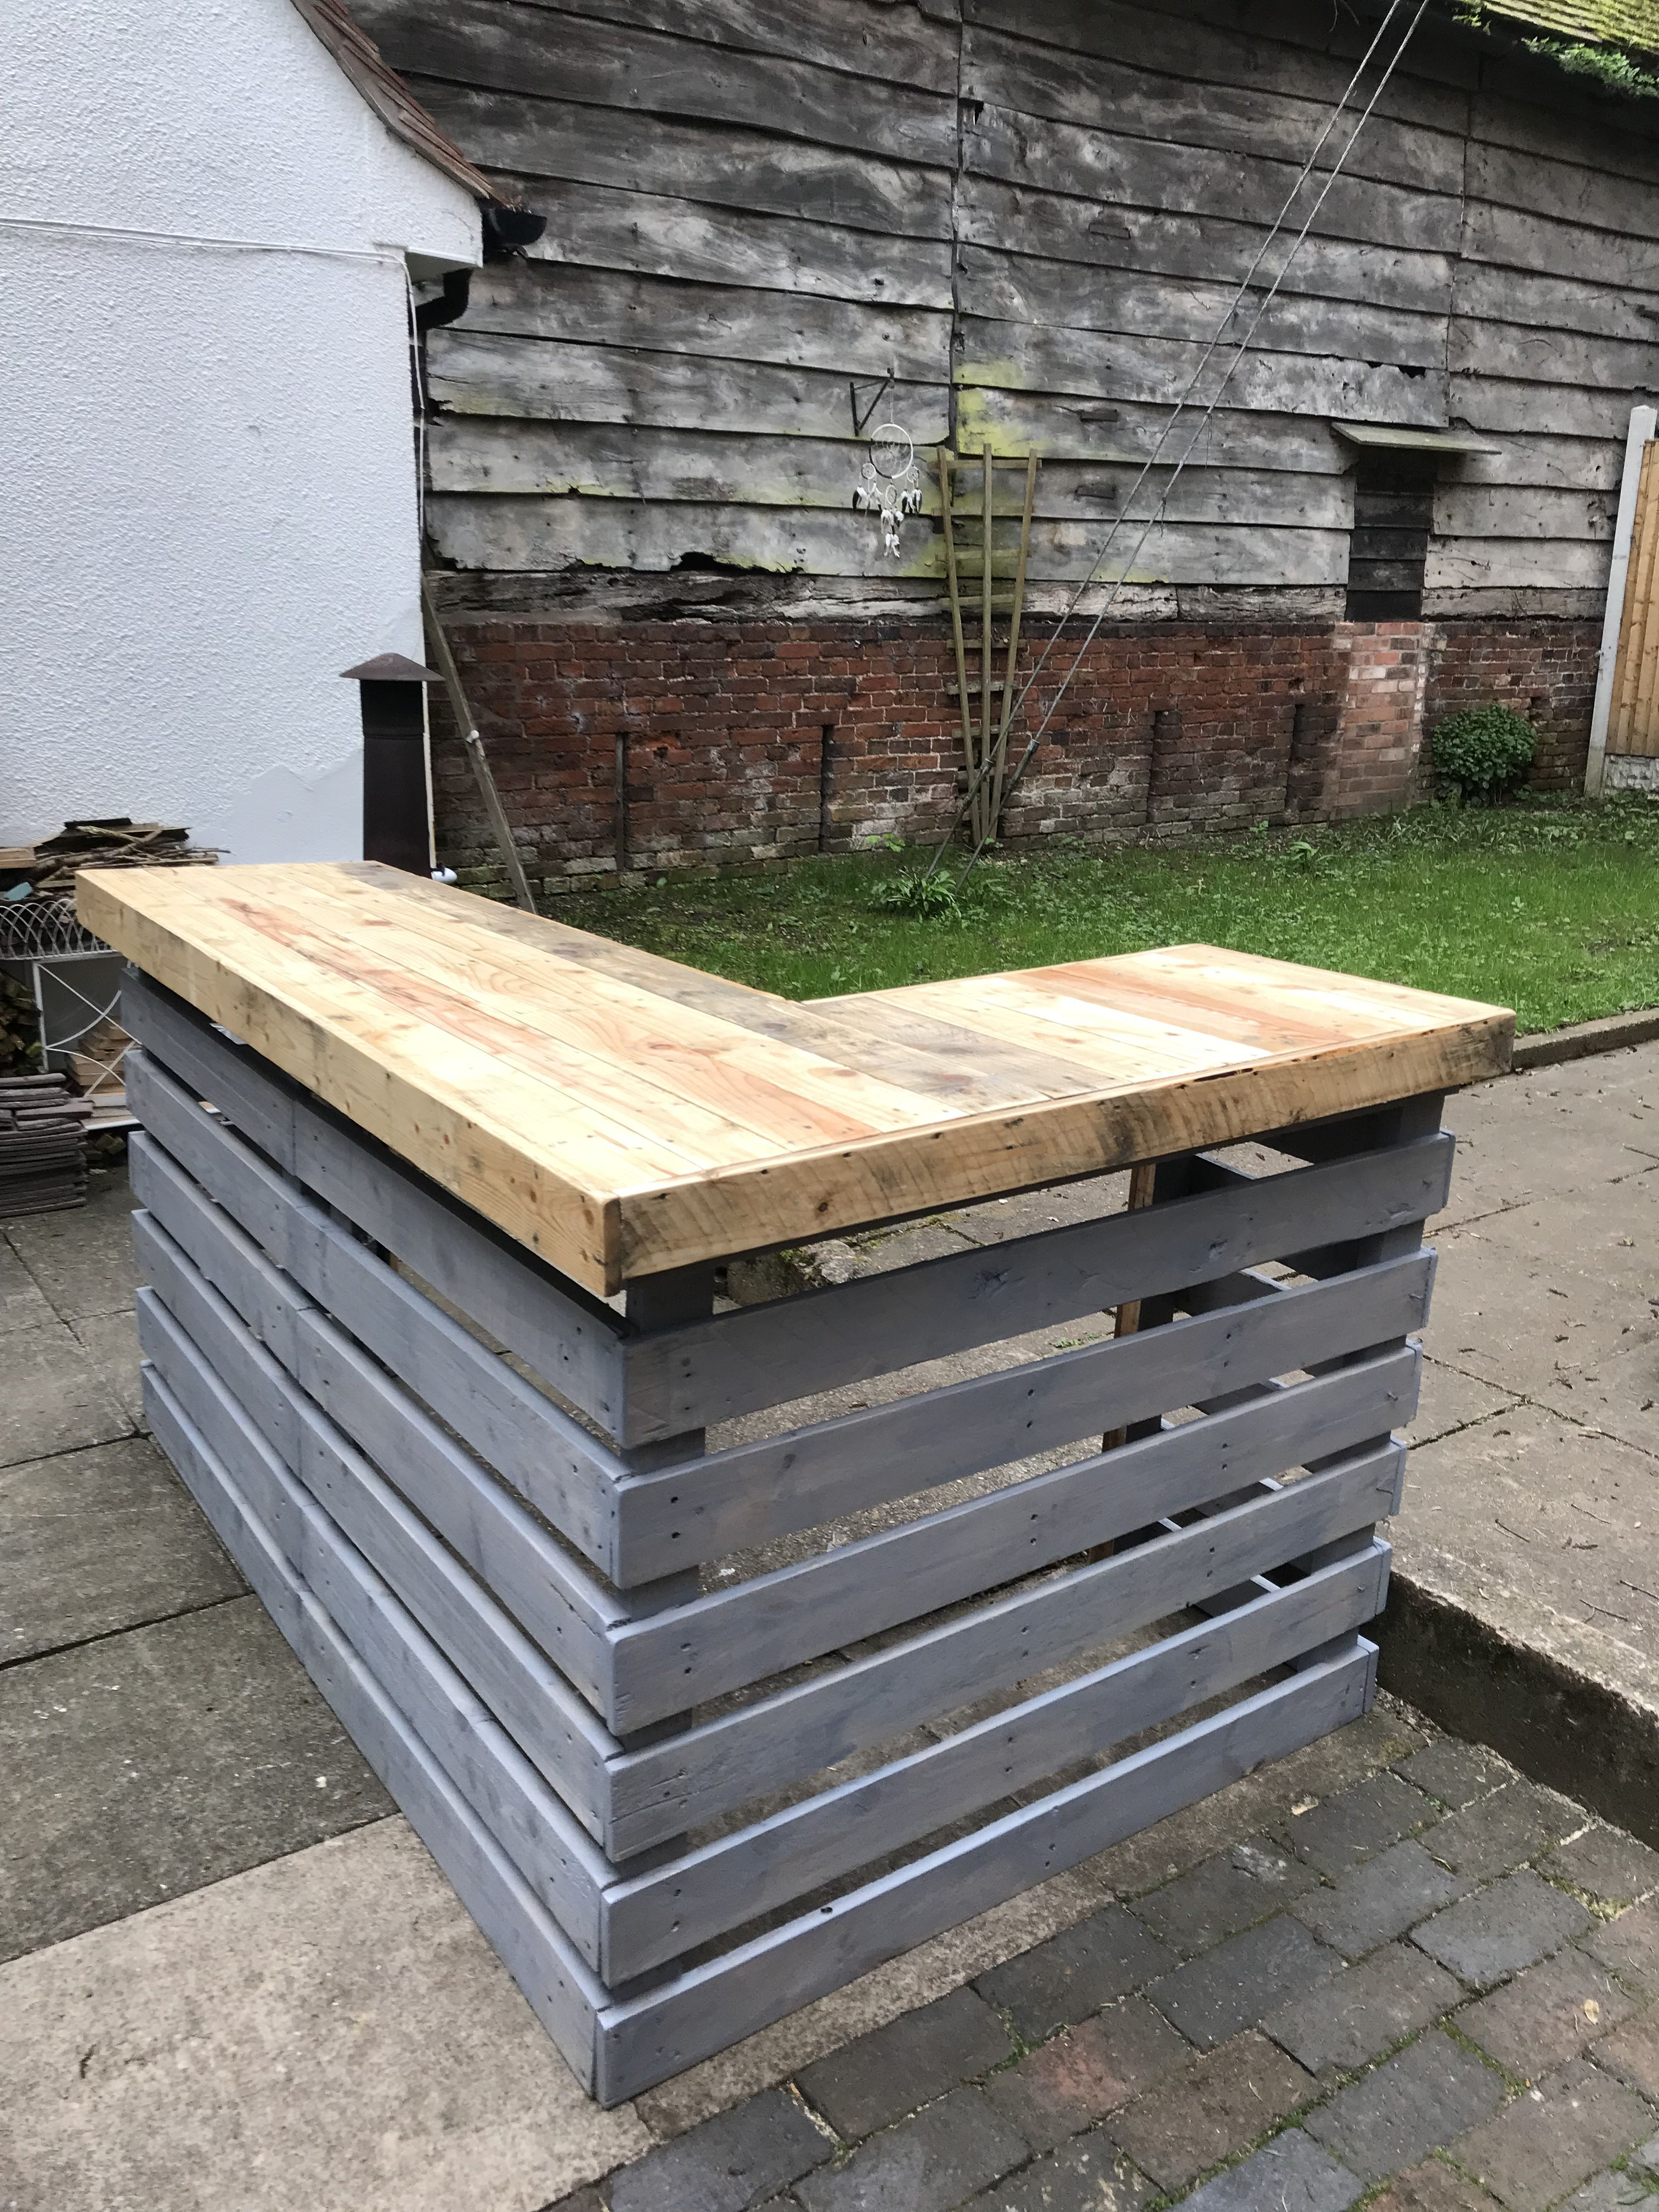 2 Coats Of Danish Oil On The Bar Top 1 More To Go Then Buffed Up Slats Painted In Night Shore Diy Outdoor Bar Wood Pallet Bar Pallet Bar Diy